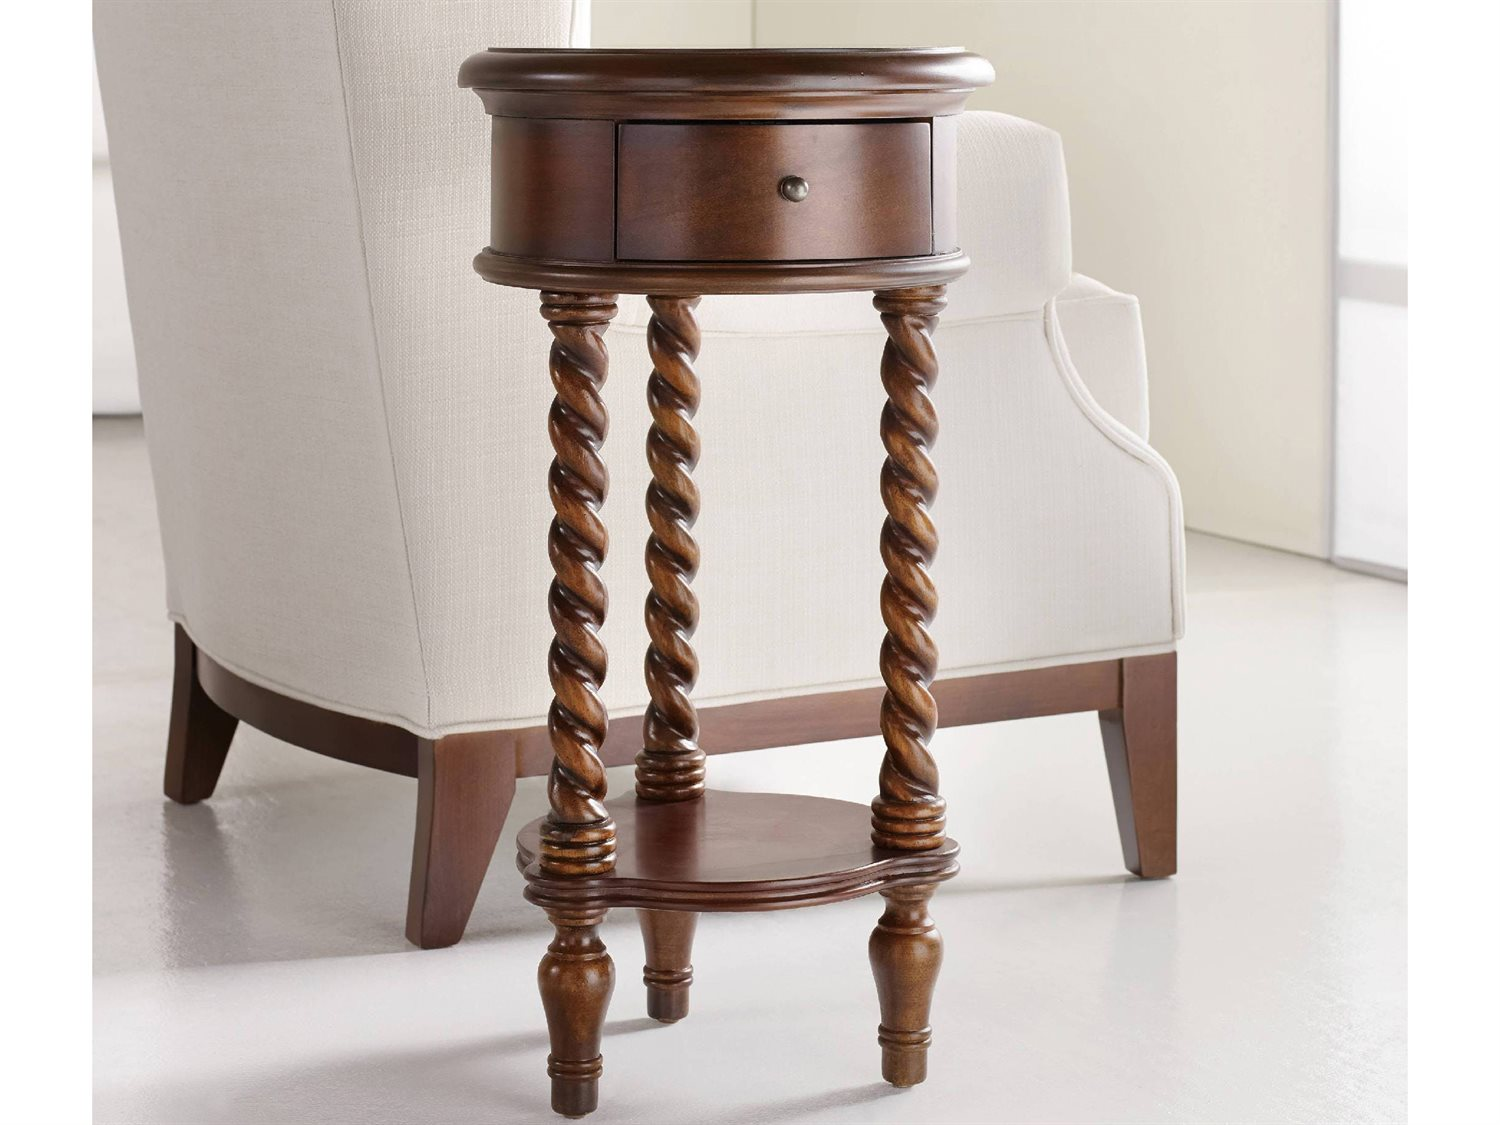 hooker furniture maple cherry chestnut wide round accent table end venice west elm emmerson ethan allen windsor chairs armless chair coloring tablecloth cotton contemporary glass